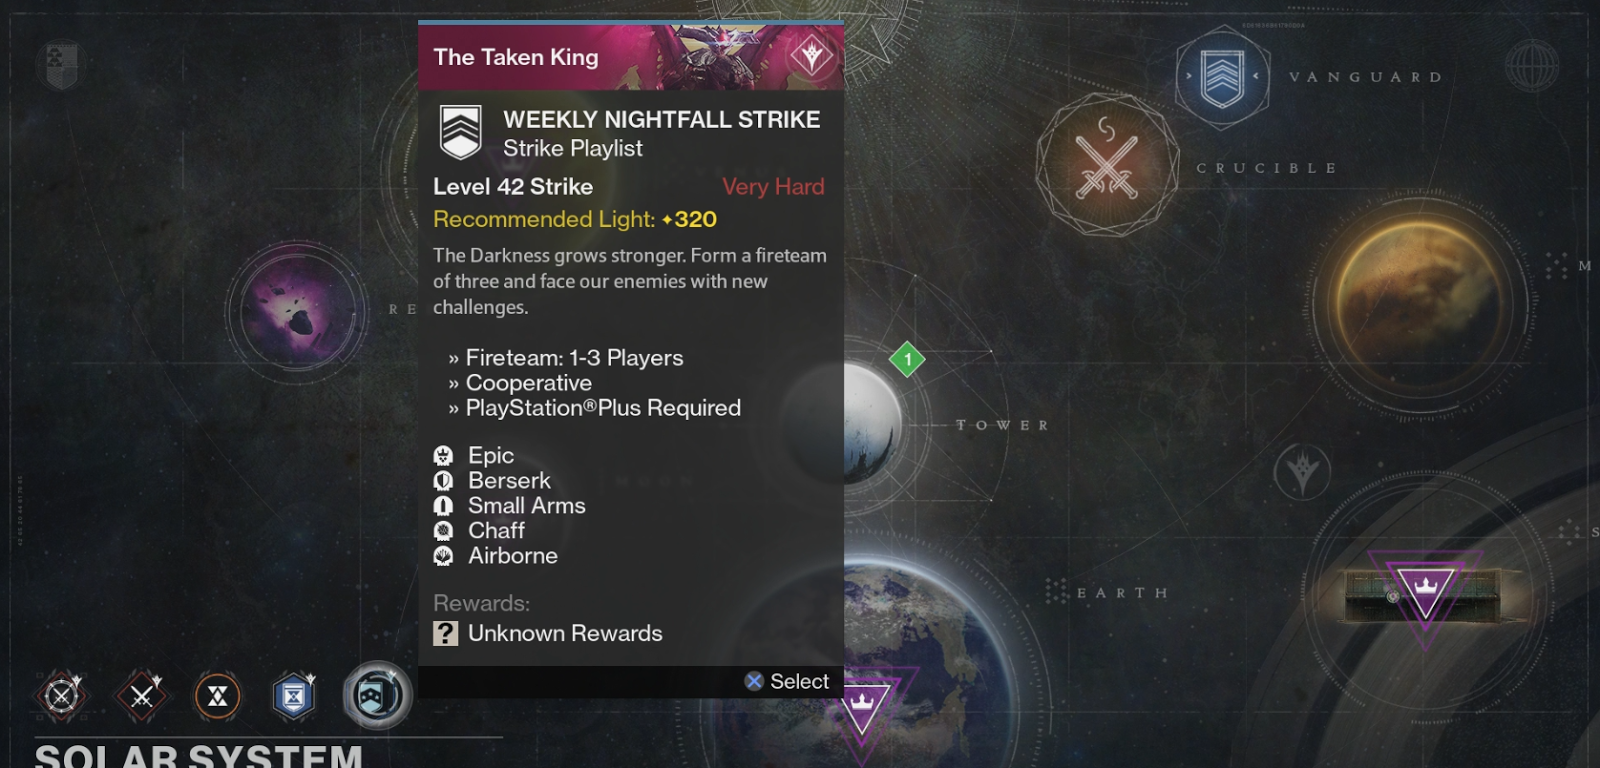 Destiny matchmaking for nightfall